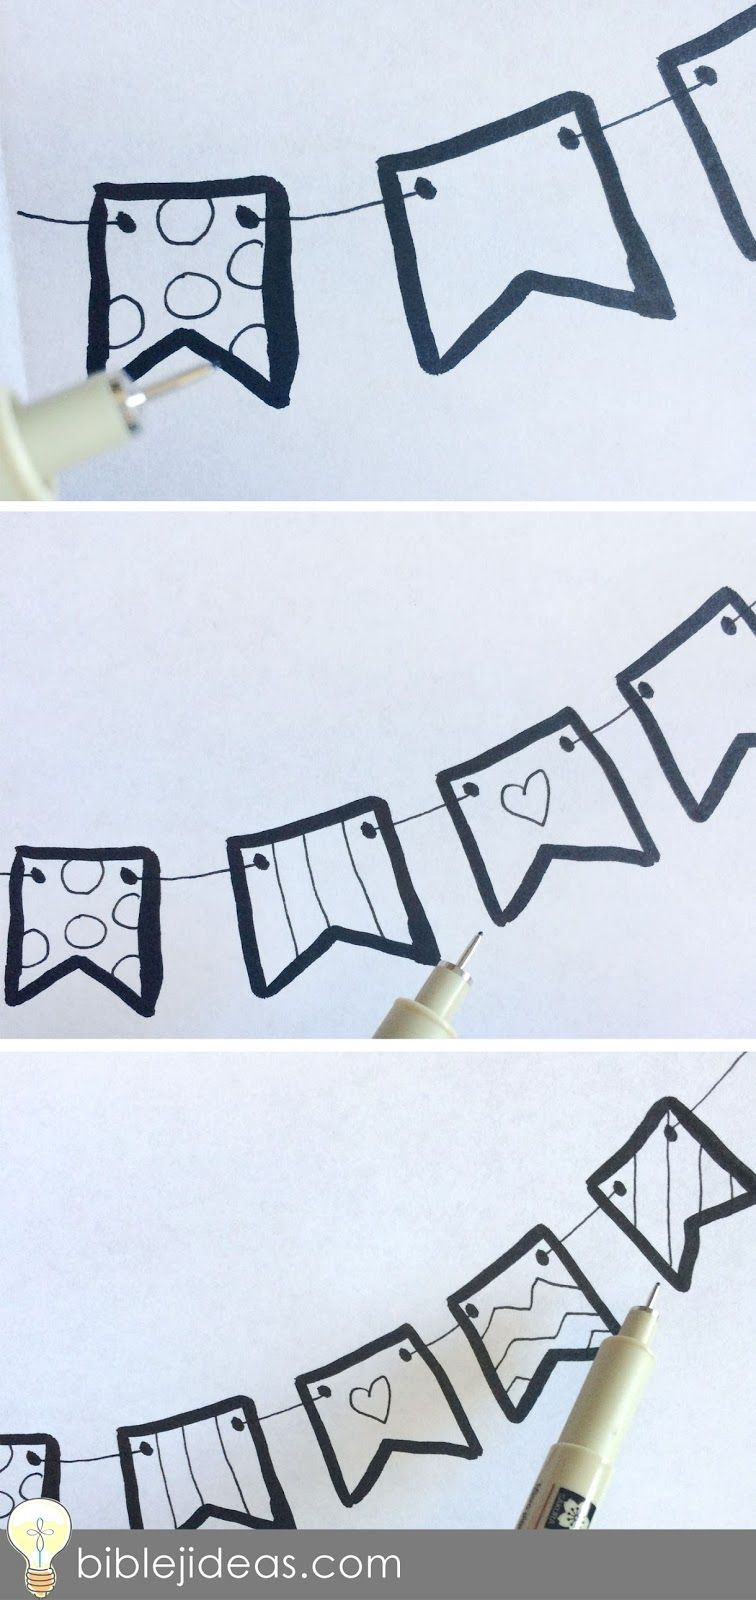 A Simple Banner You Can Draw Today (With images) | Banner ...